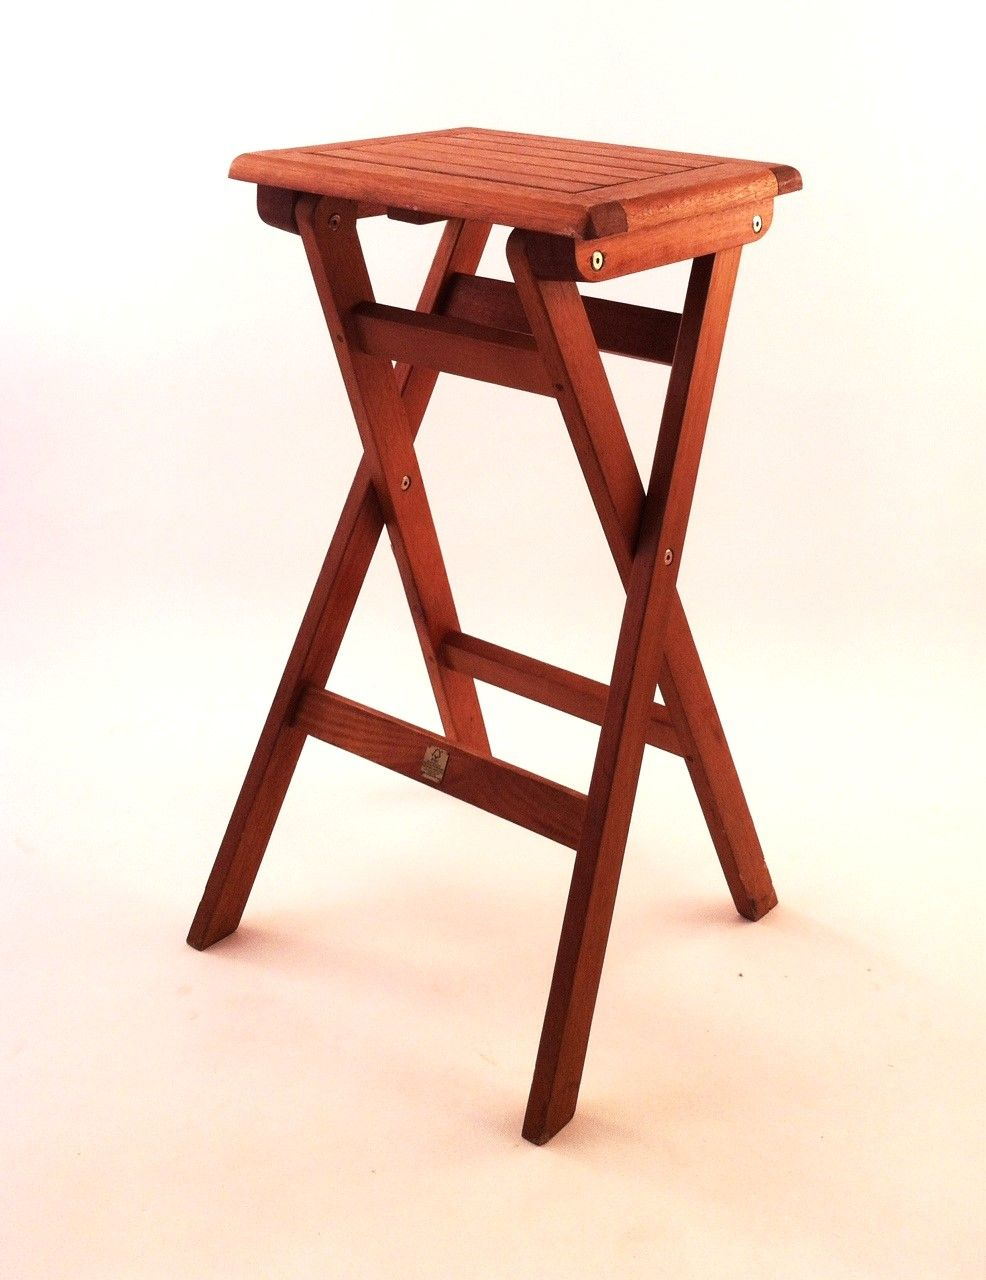 Making Wood Folding Bar Stools Home Design And Decor